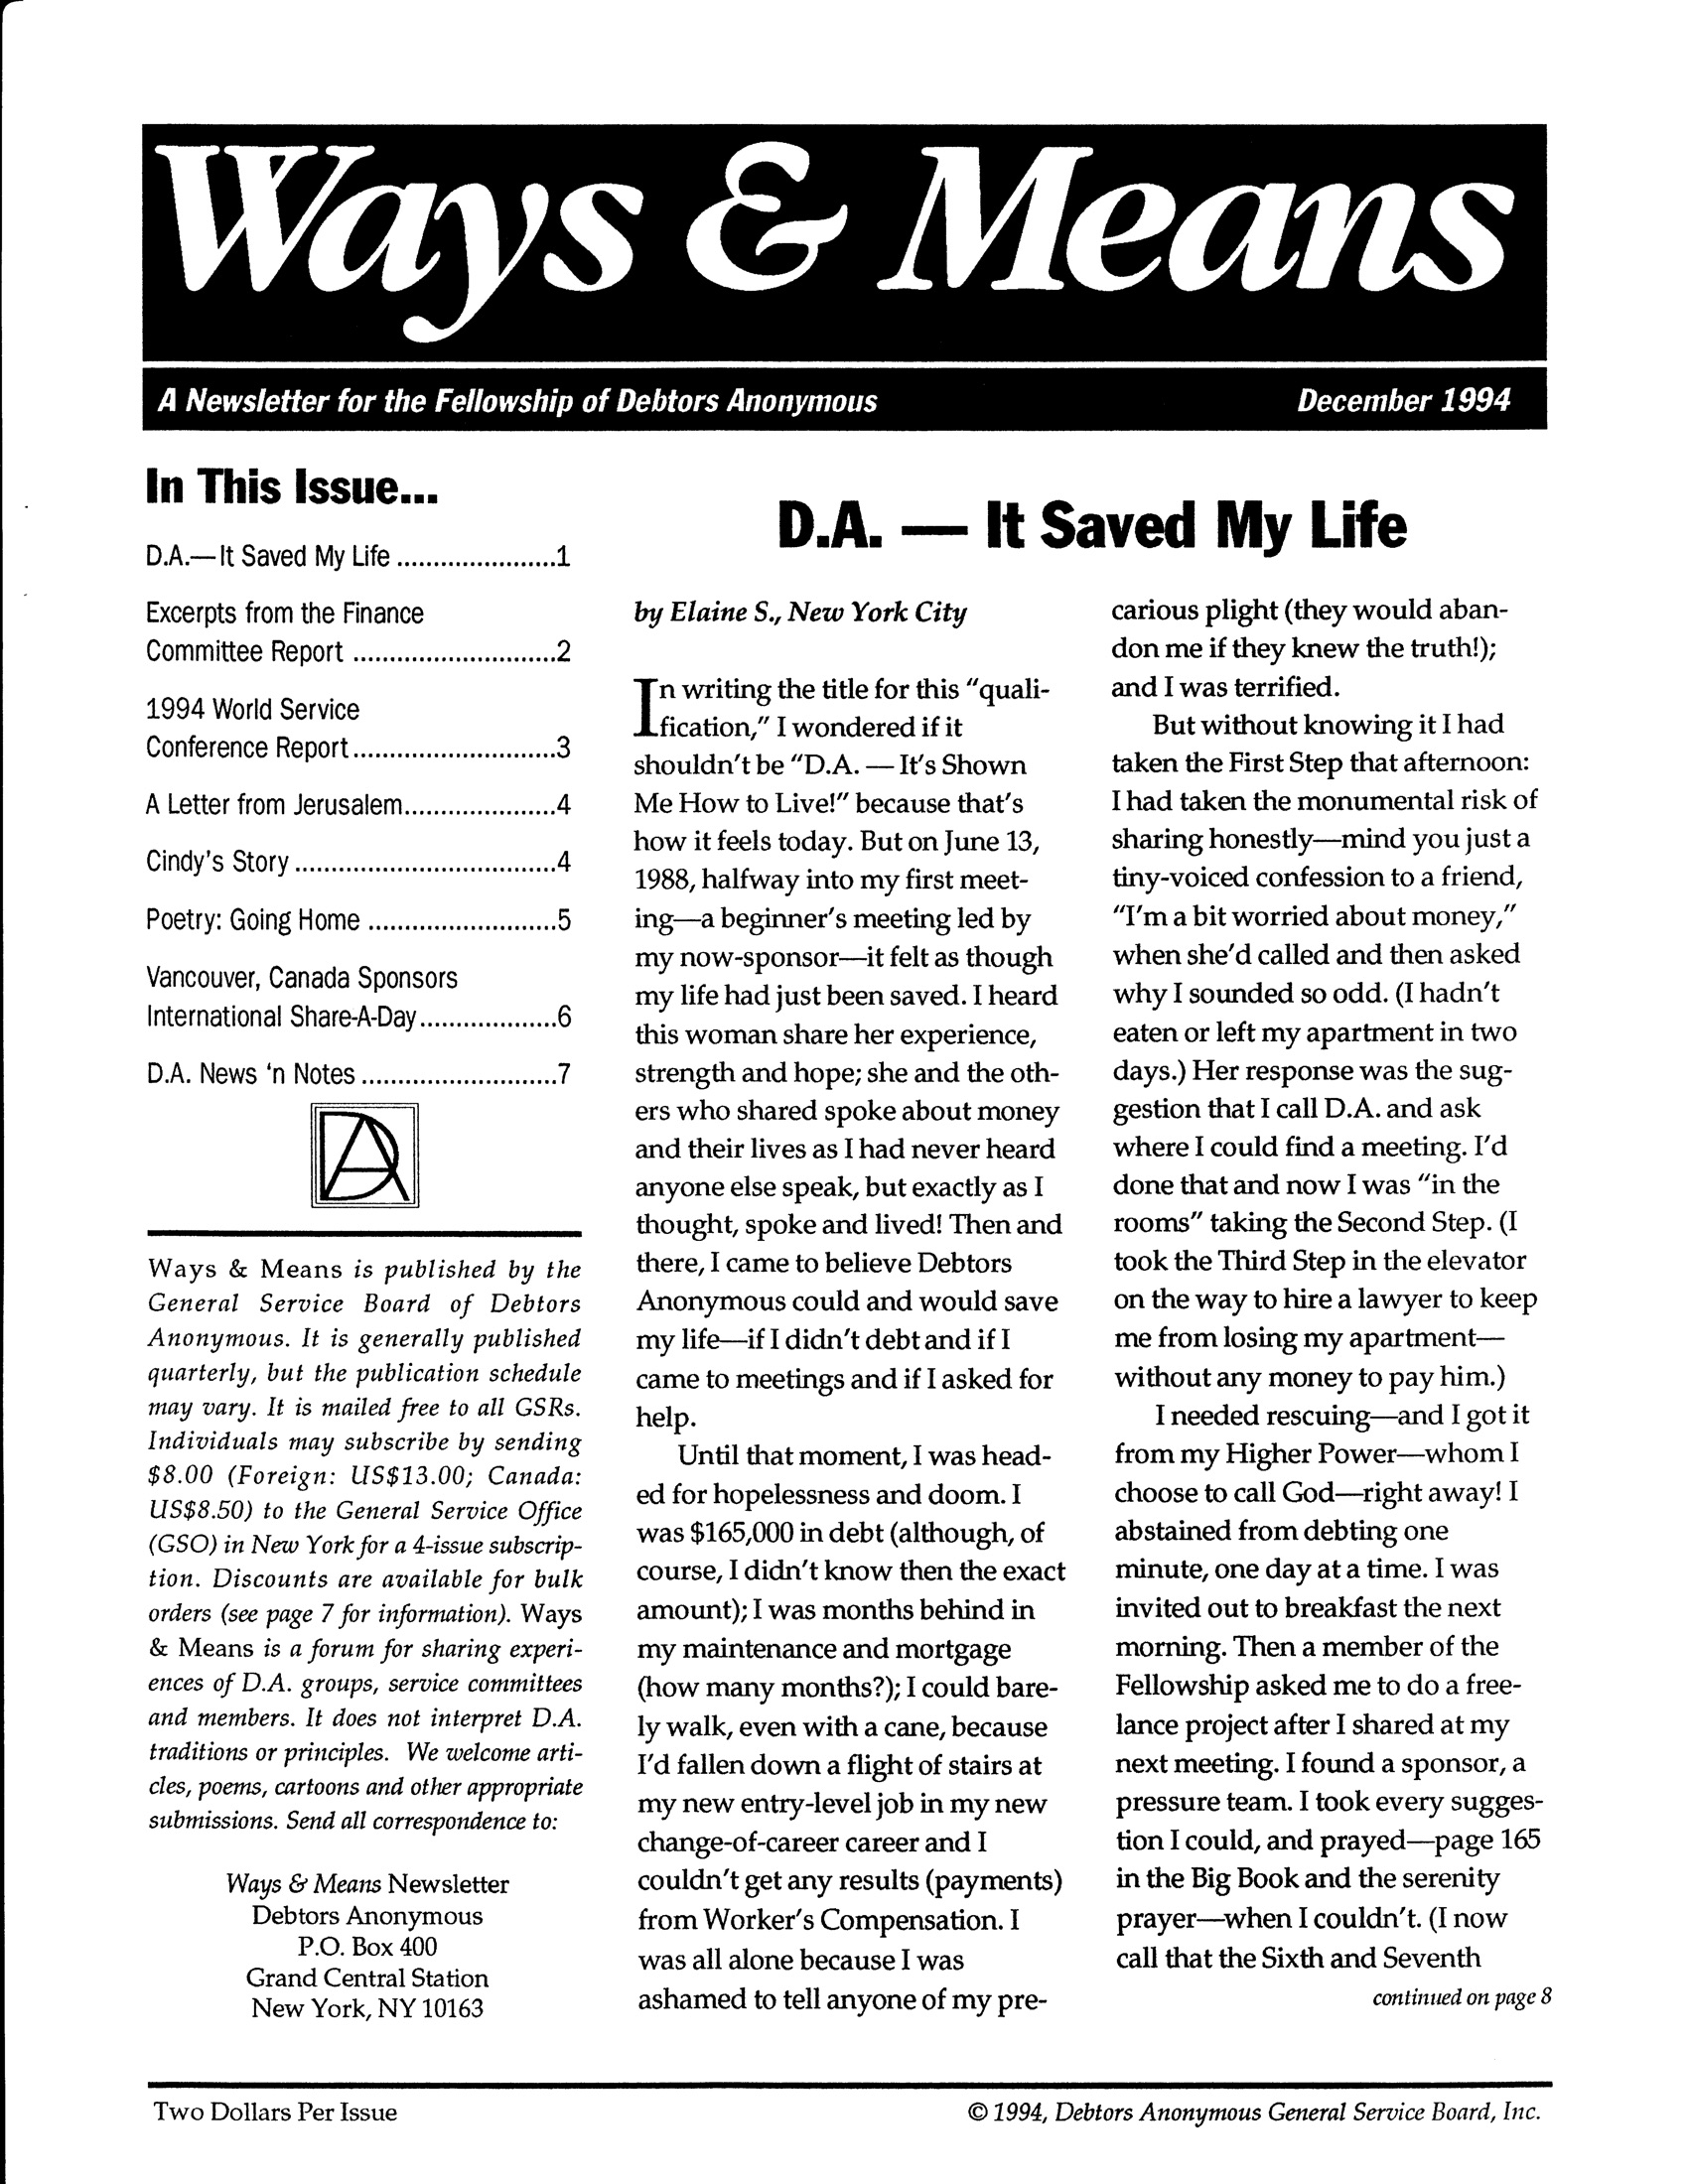 Ways & Means 4th QTR 1994